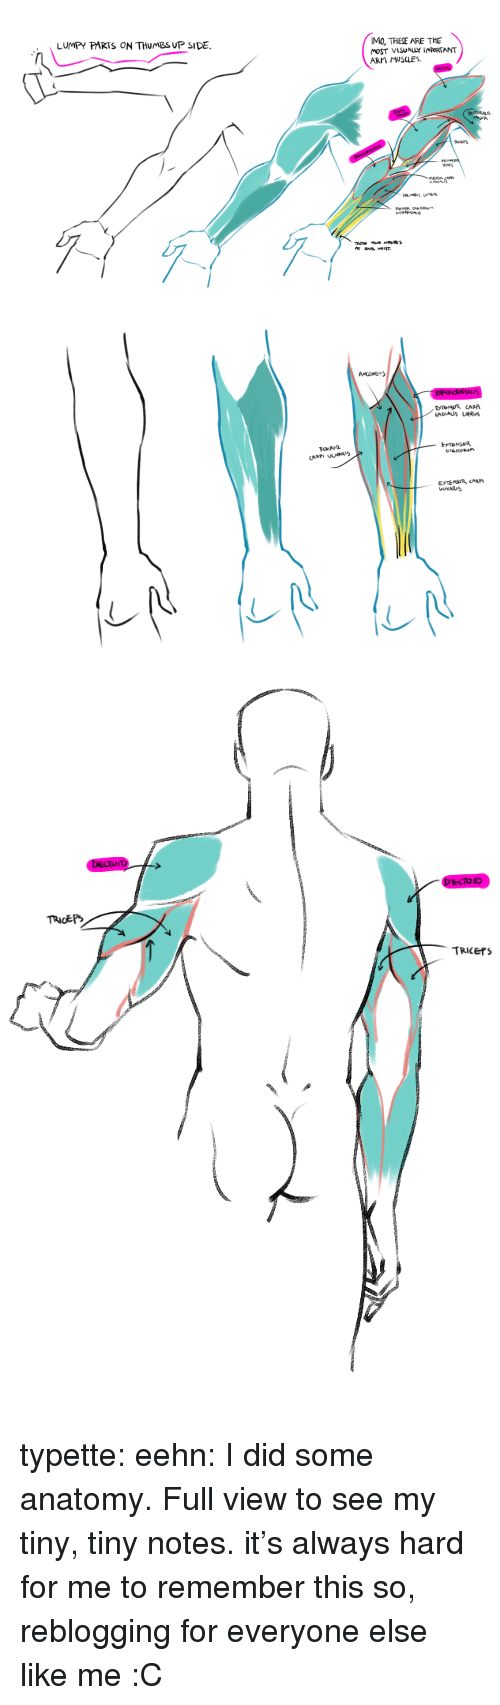 Target, Tumblr, and Blog: IMO, THESE ARE THE  MOST VISUALY IMPORTANT  ARM MUSCLES.  LUMPY PARTS ON THUMBS UP SIDE.  TRICEPS  PR  ENES   RADIAUS LoNCus  CARPI ULNARIS   TRiCErS typette: eehn:  I did some anatomy. Full view to see my tiny, tiny notes.  it's always hard for me to remember this so, reblogging for everyone else like me :C